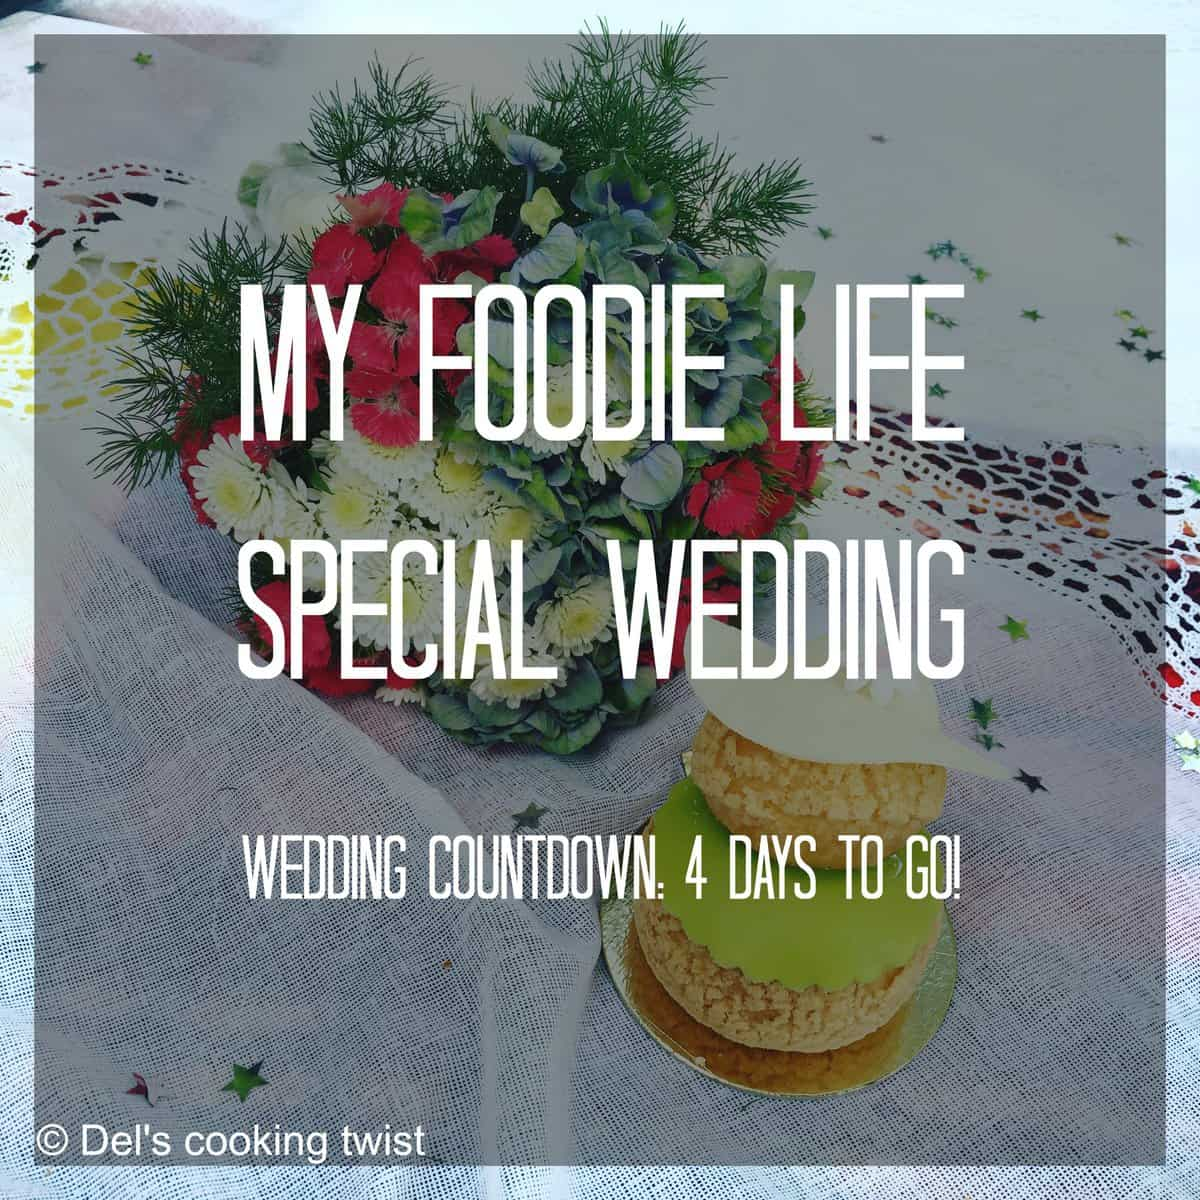 My foodie life special wedding 4 days to go